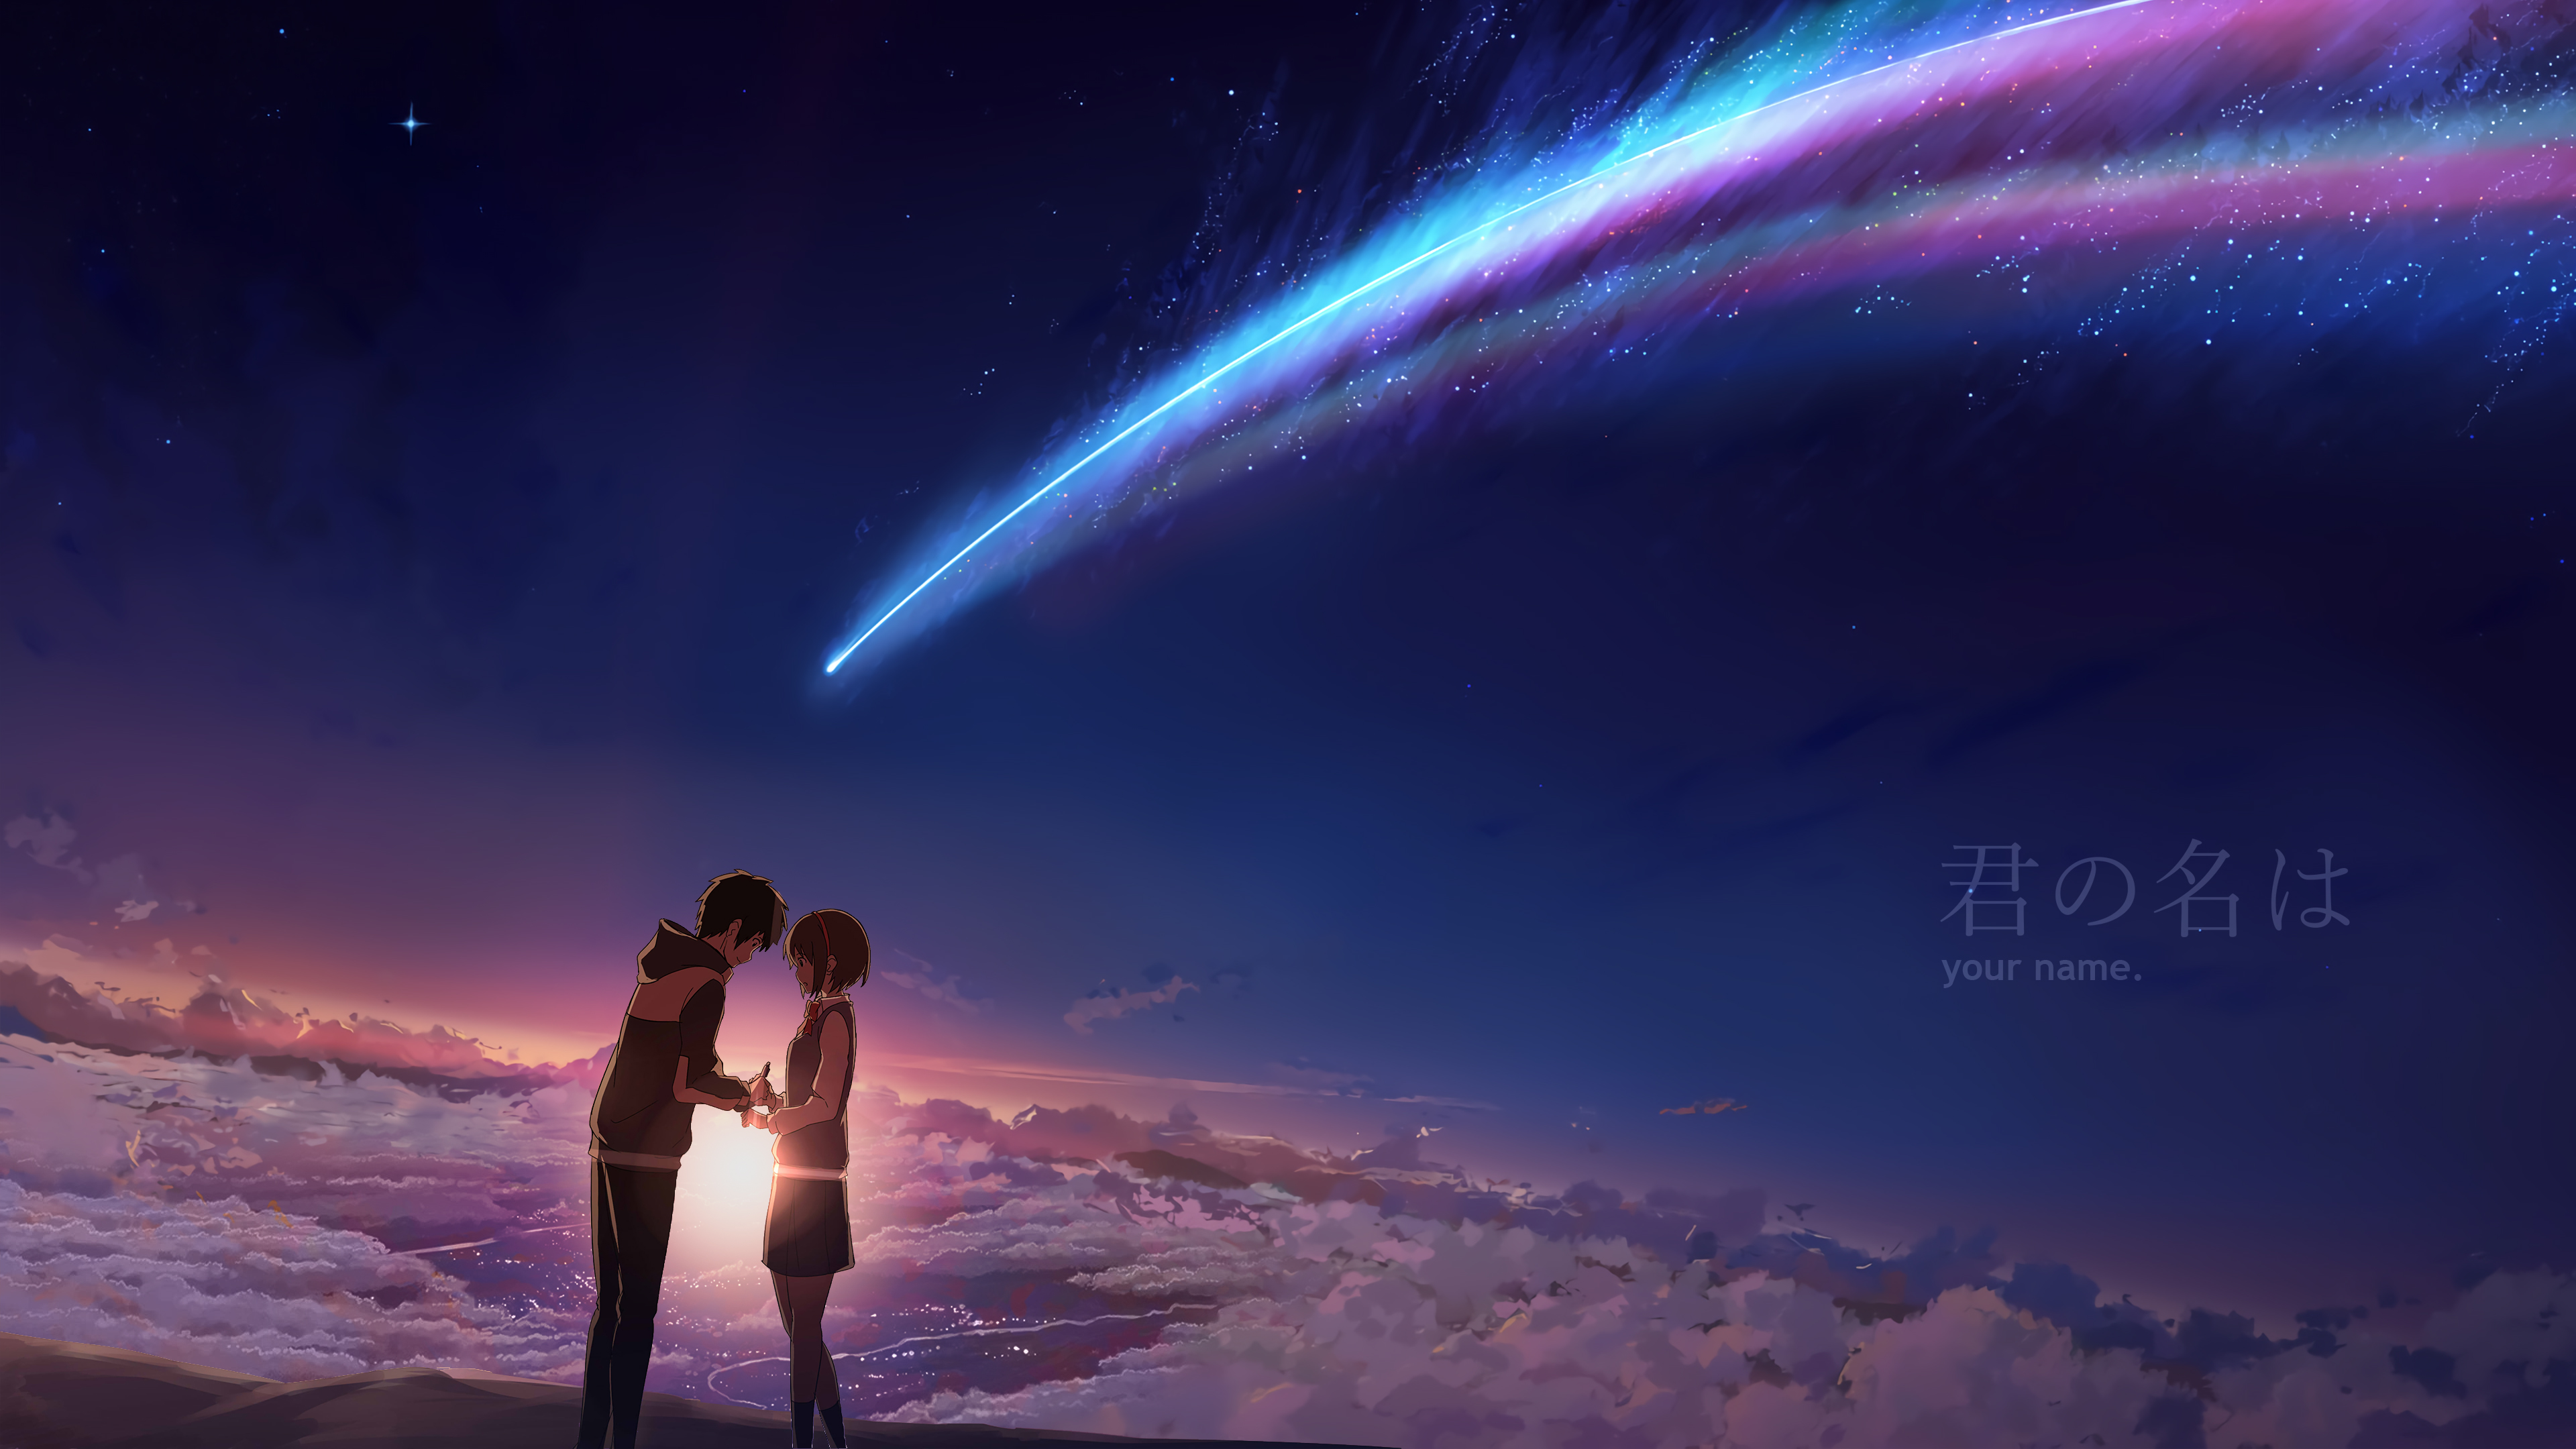 Your Name. (Kimi no Na wa)